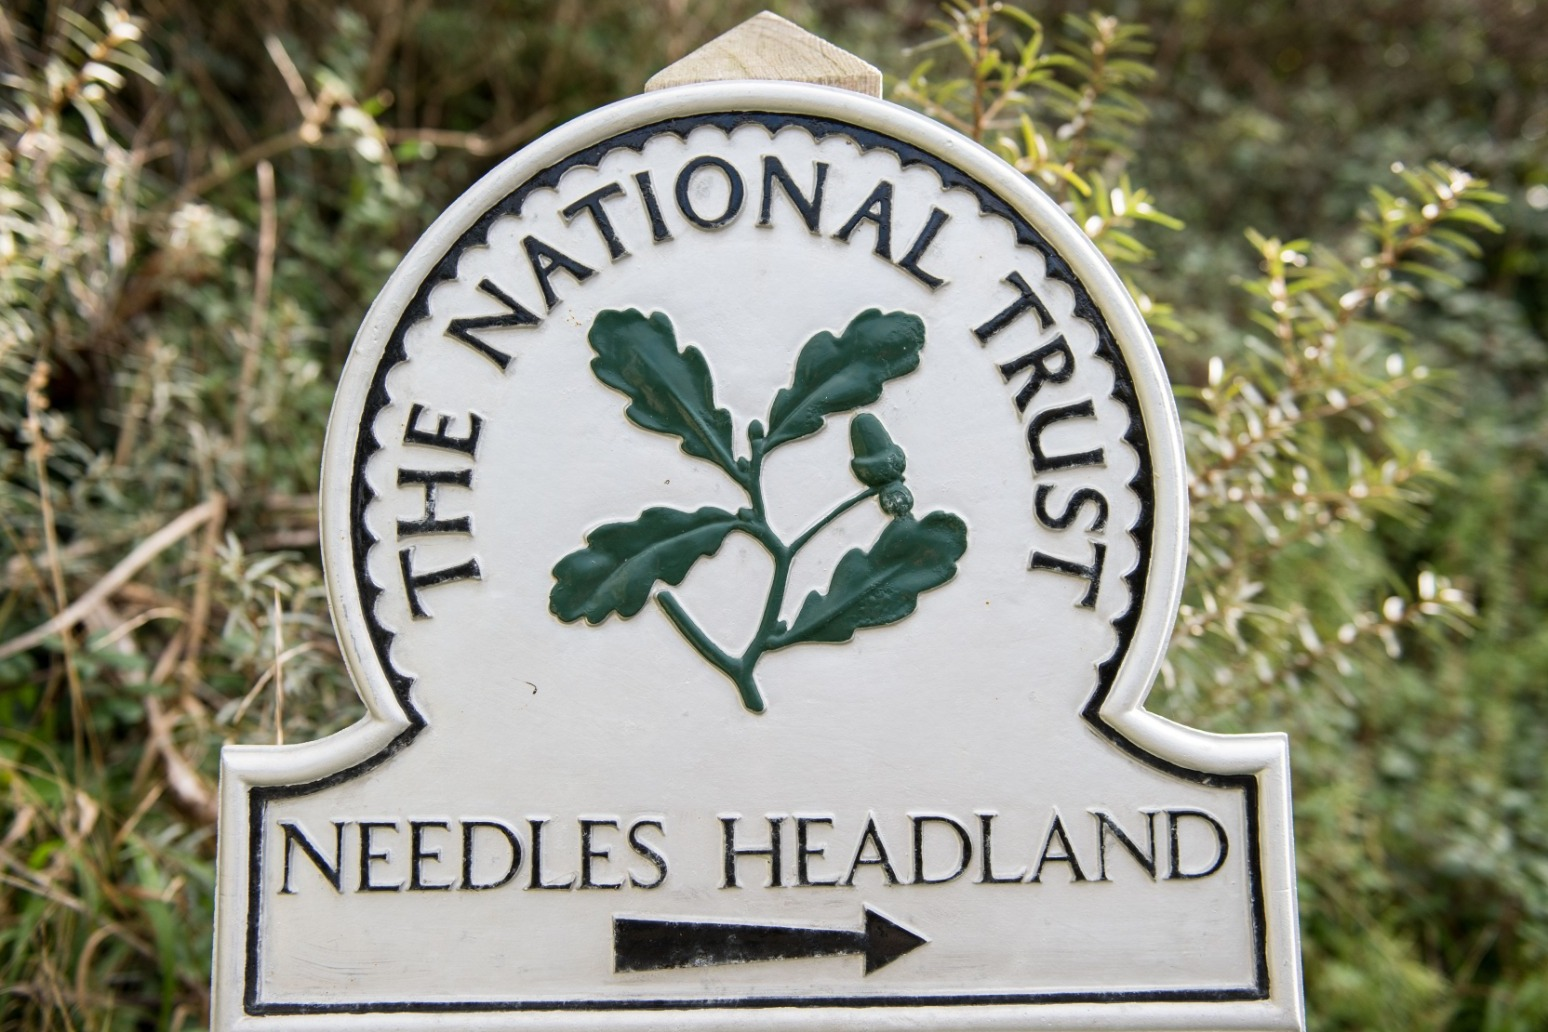 National Trust aiming to attract young people as it celebrates 125 years